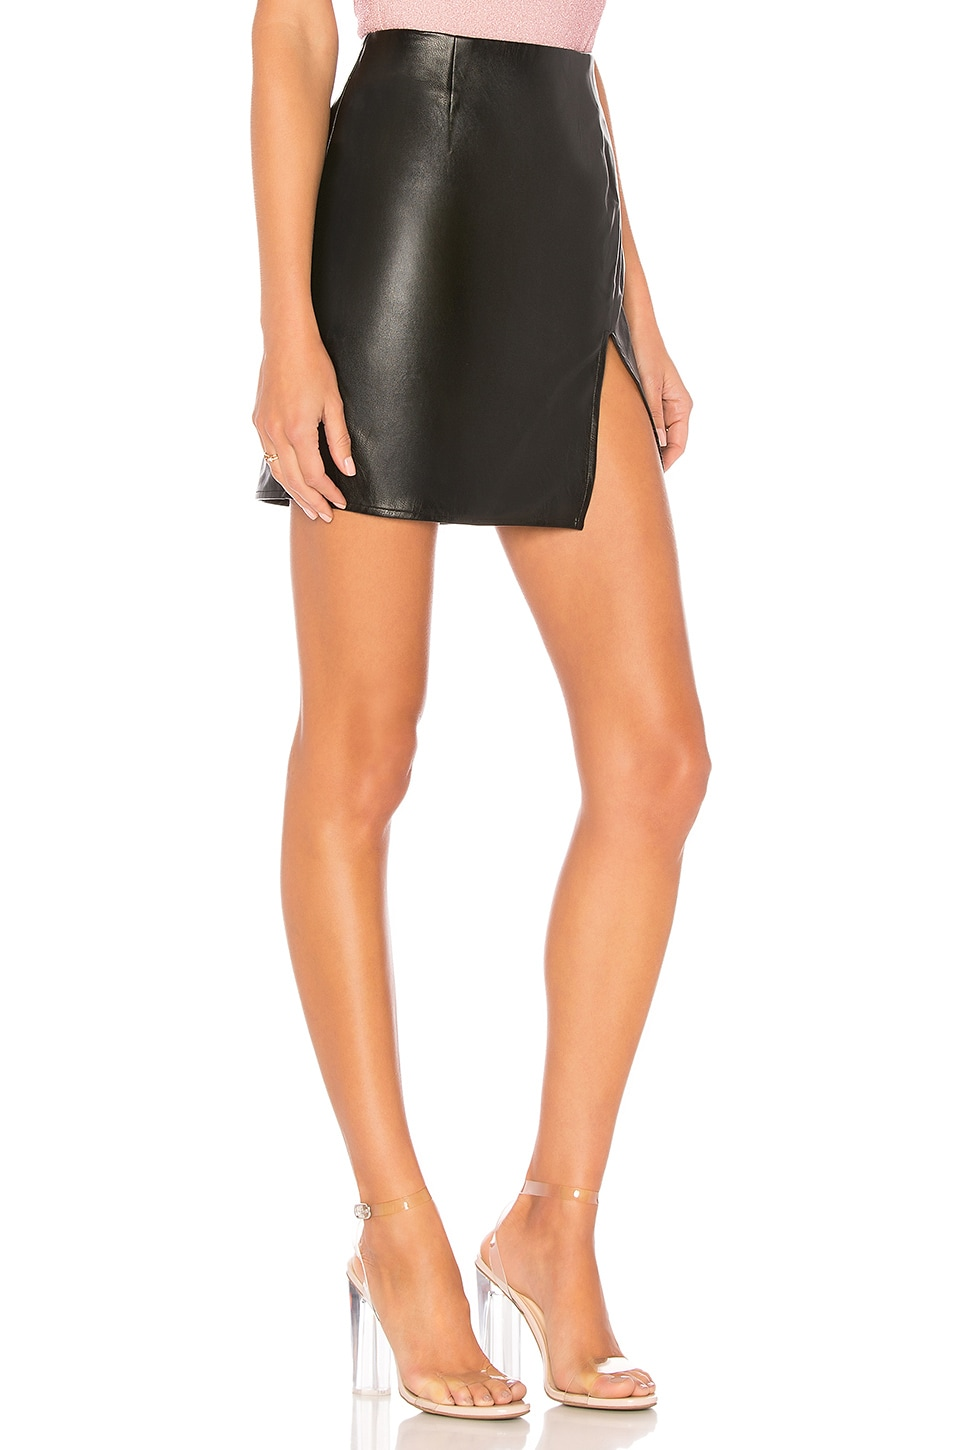 Trinity Faux Leather Skirt, view 2, click to view large image.